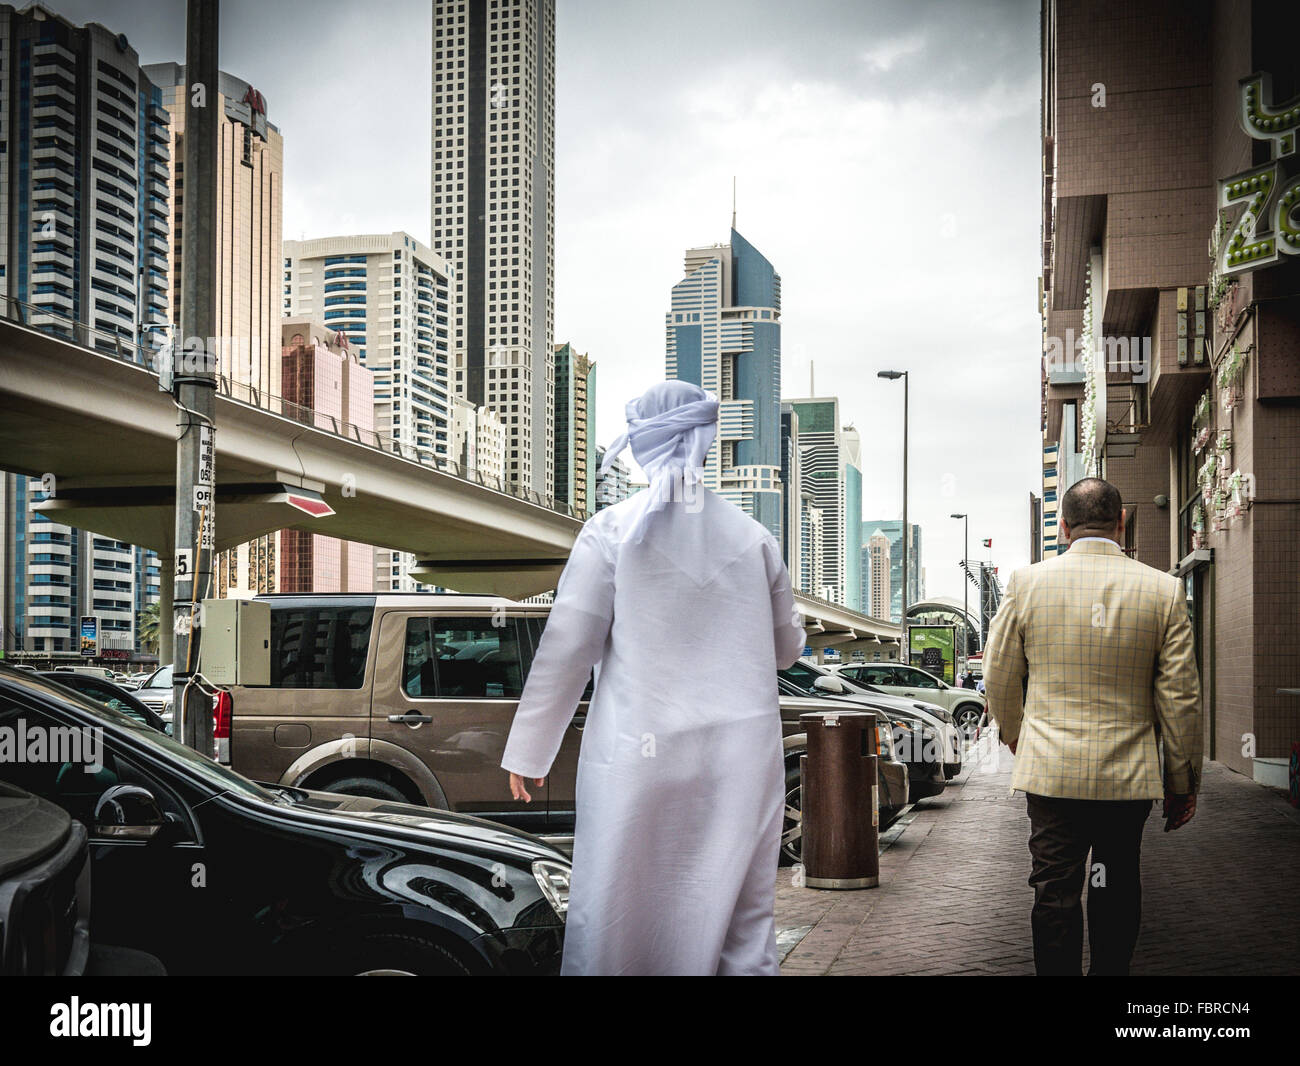 Arab man walking along busy Sheik Zayed Road - Stock Image